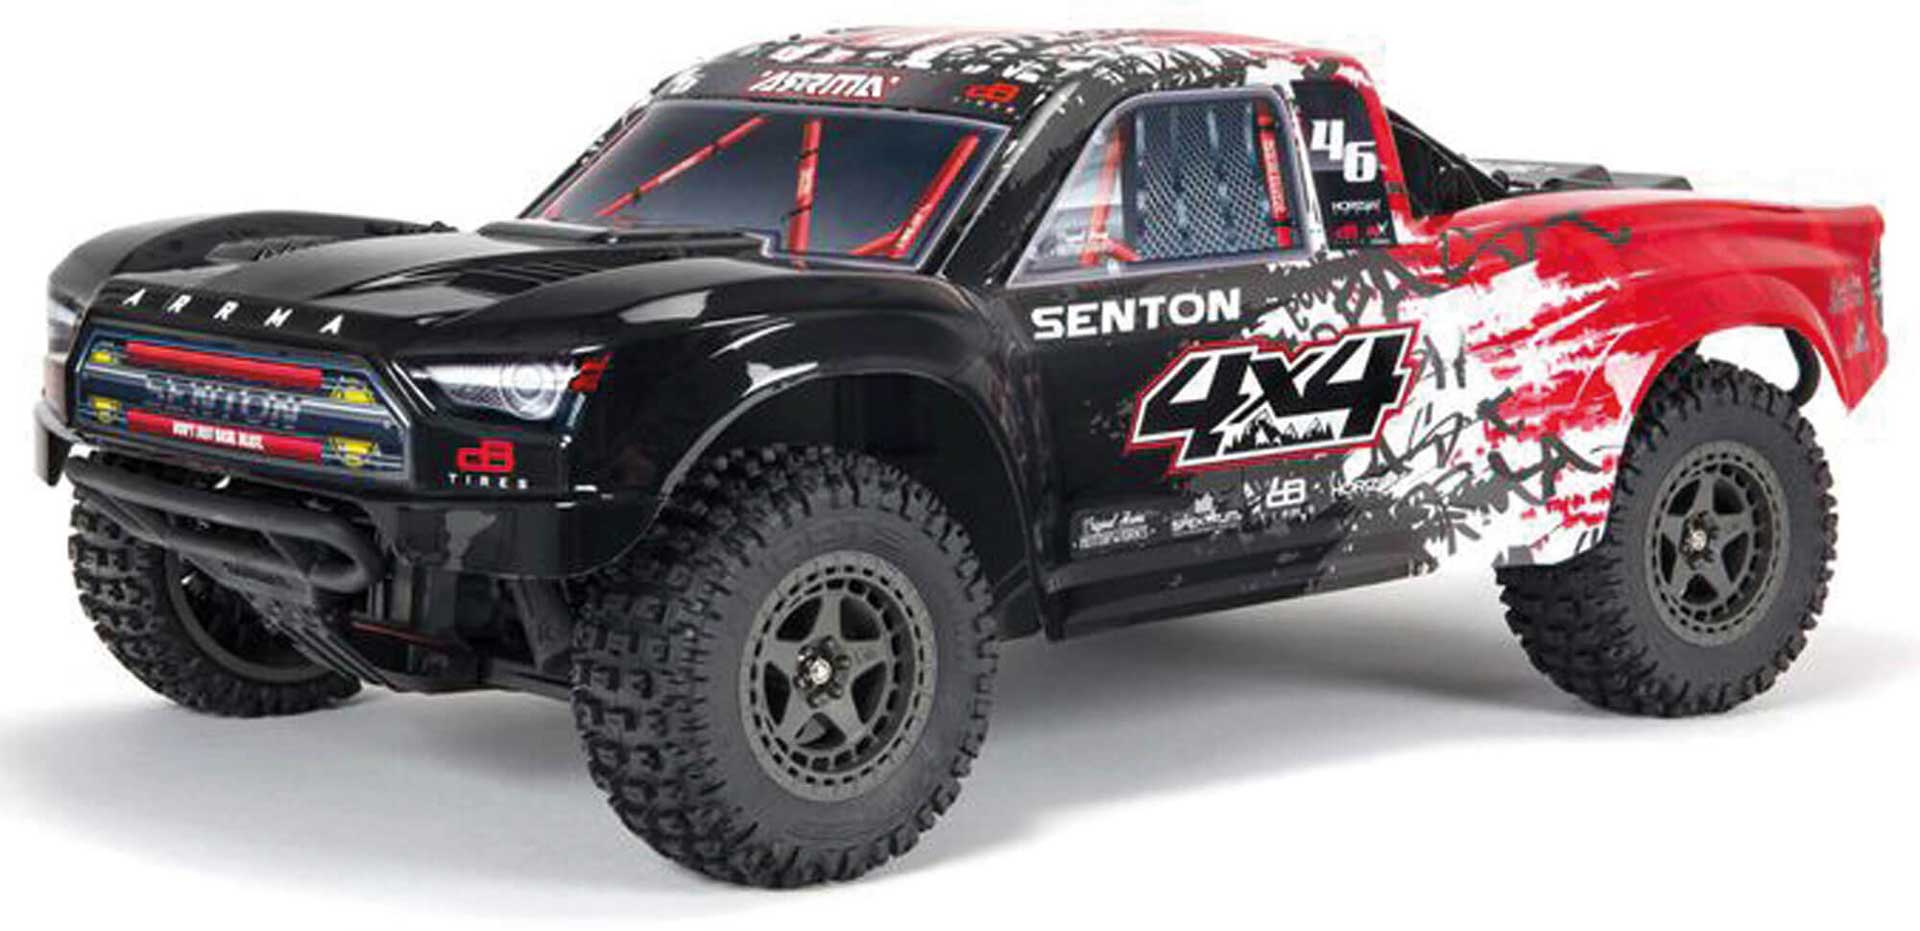 ARRMA SENTON 4X4 3S BLX Brushless 1/10th 4wd SC Color2